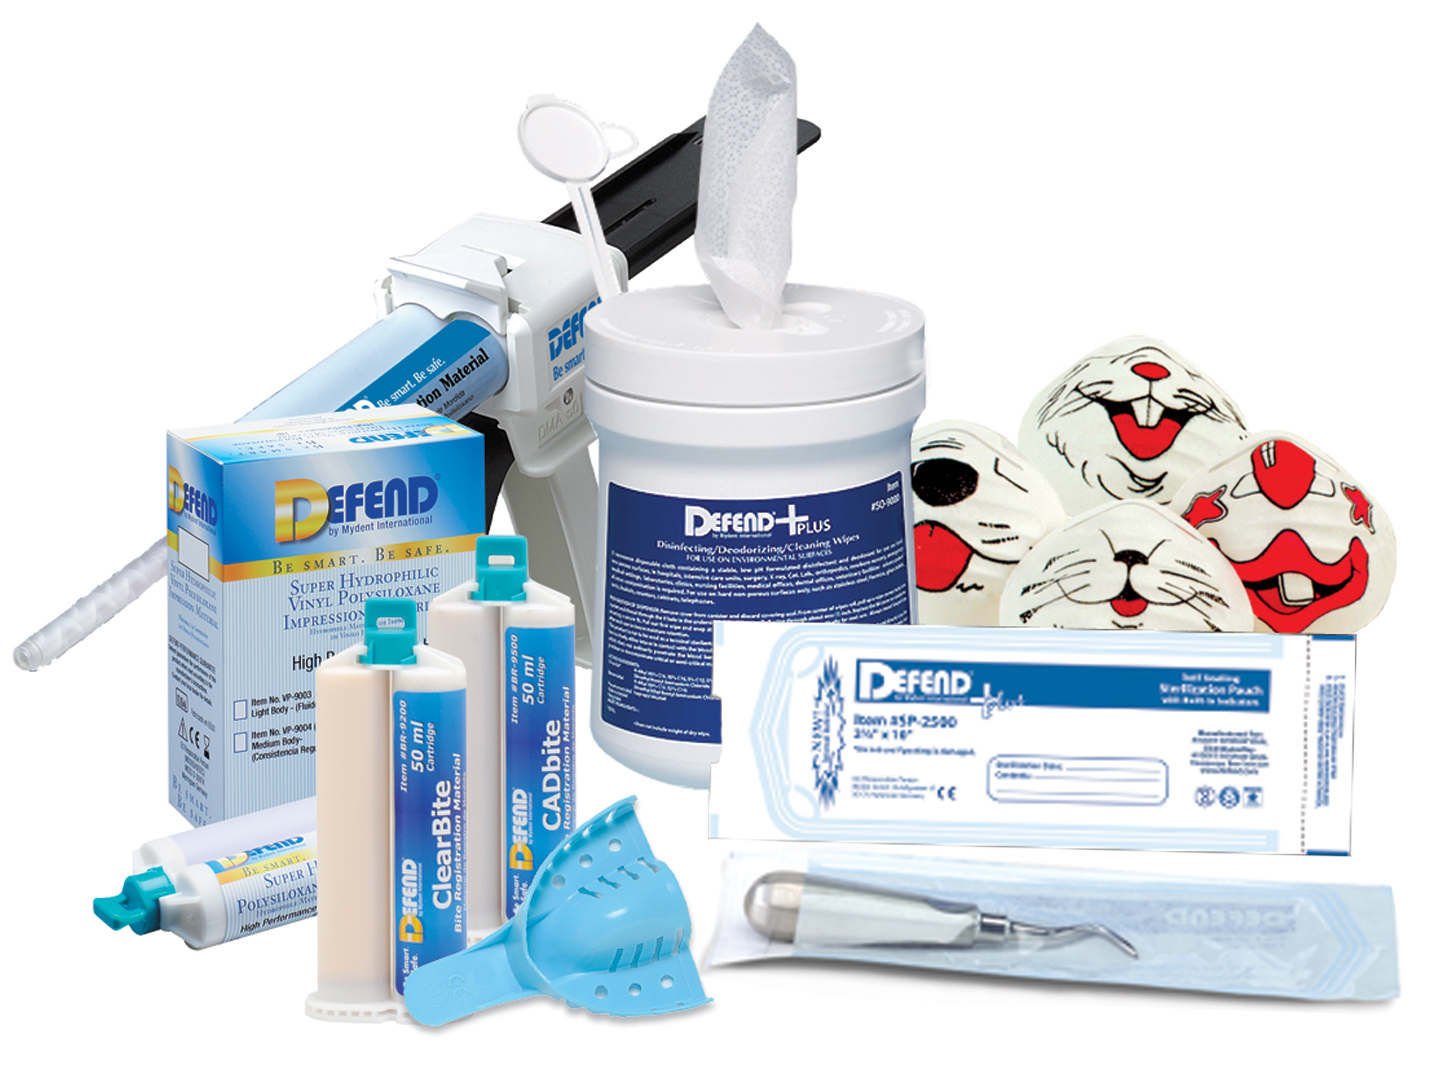 Defend dental supplies dental supplies defend by for Waste material products